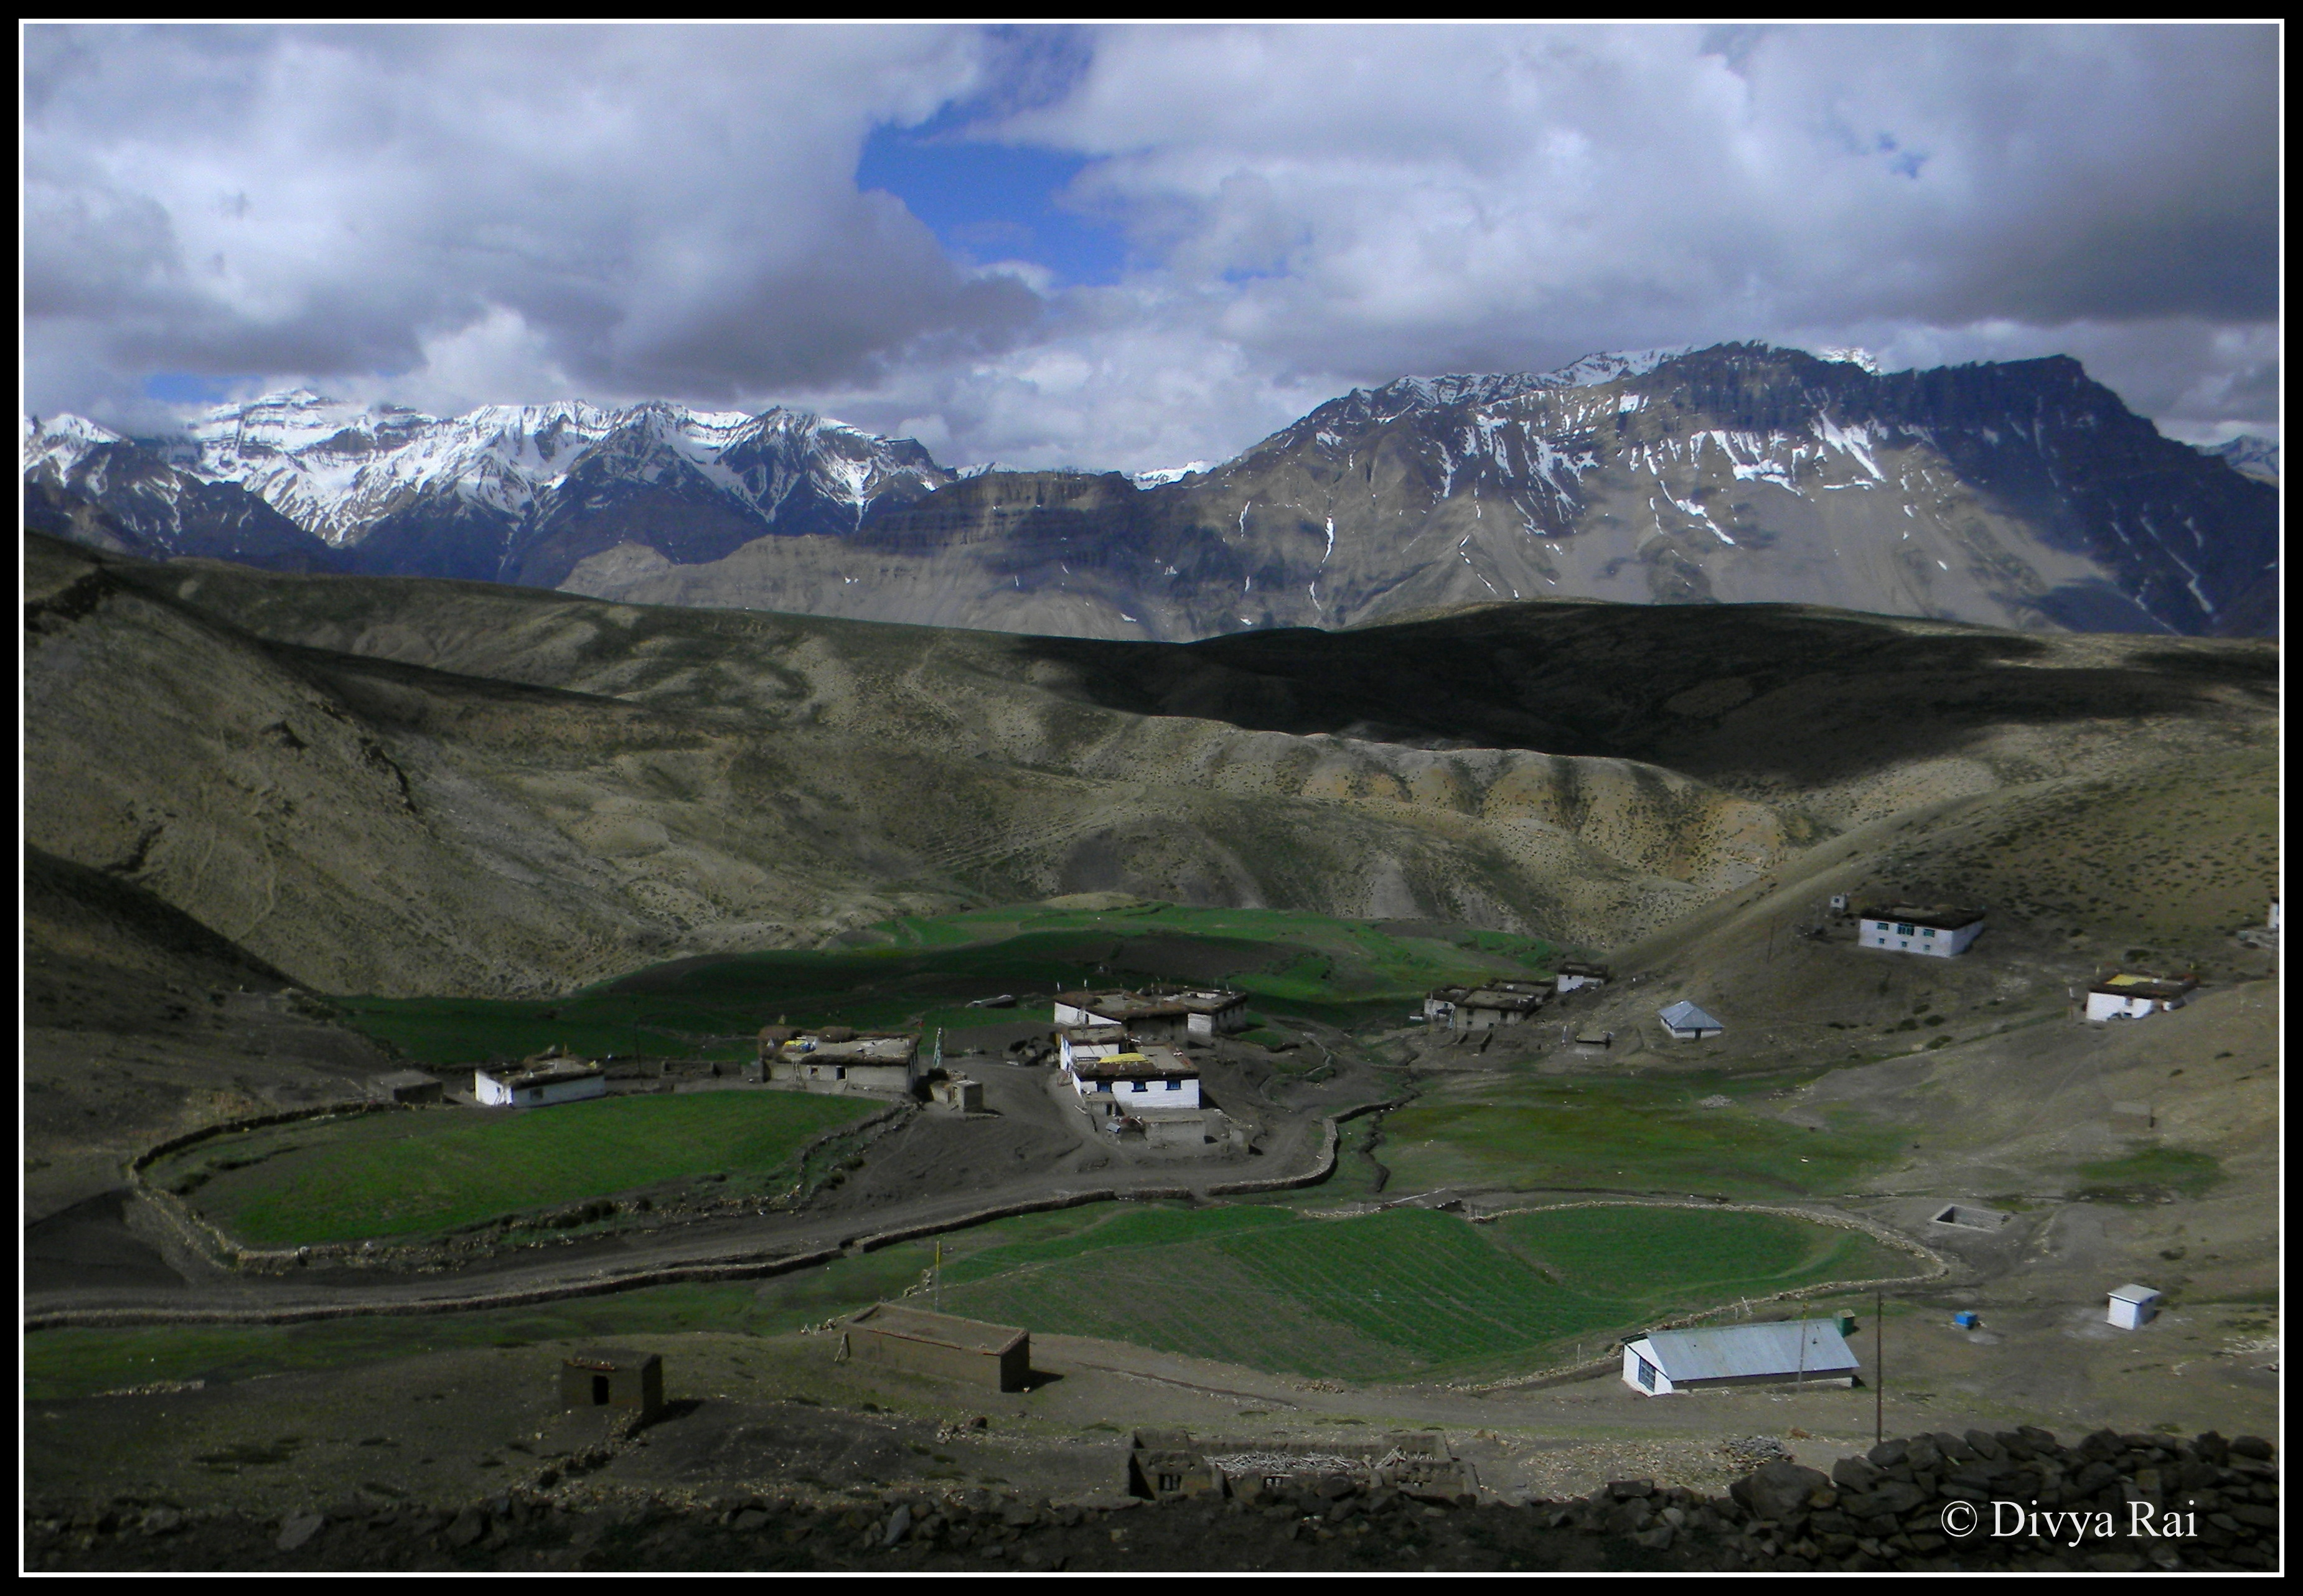 Komik village in Spiti